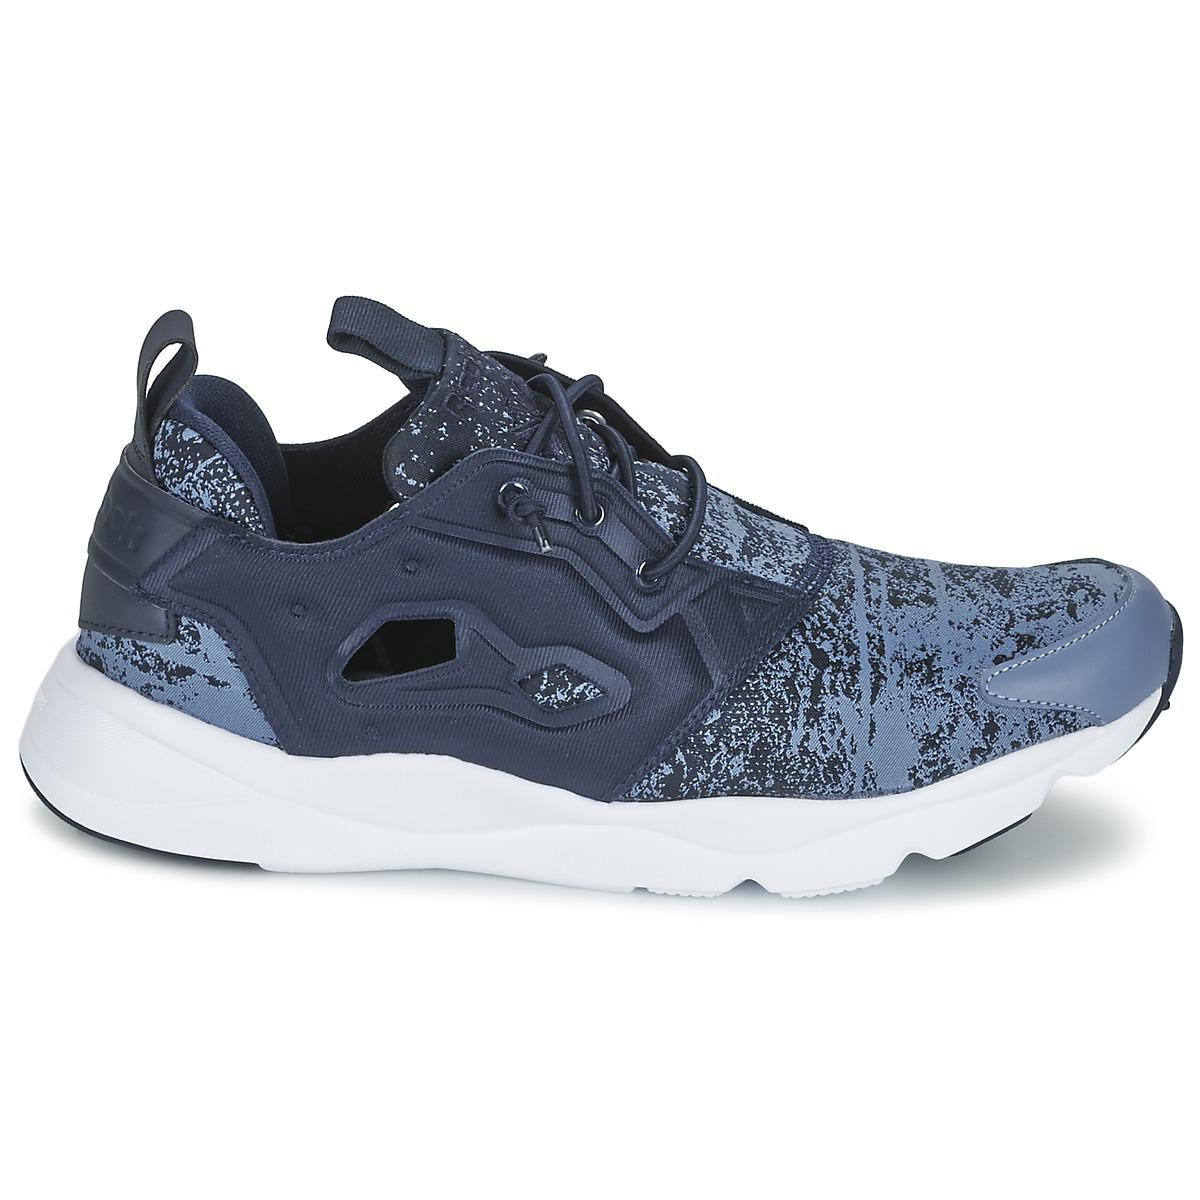 e45b0950df5ba6 Reebok - Blue Furylite Jf Shoes (trainers) for Men - Lyst. View fullscreen